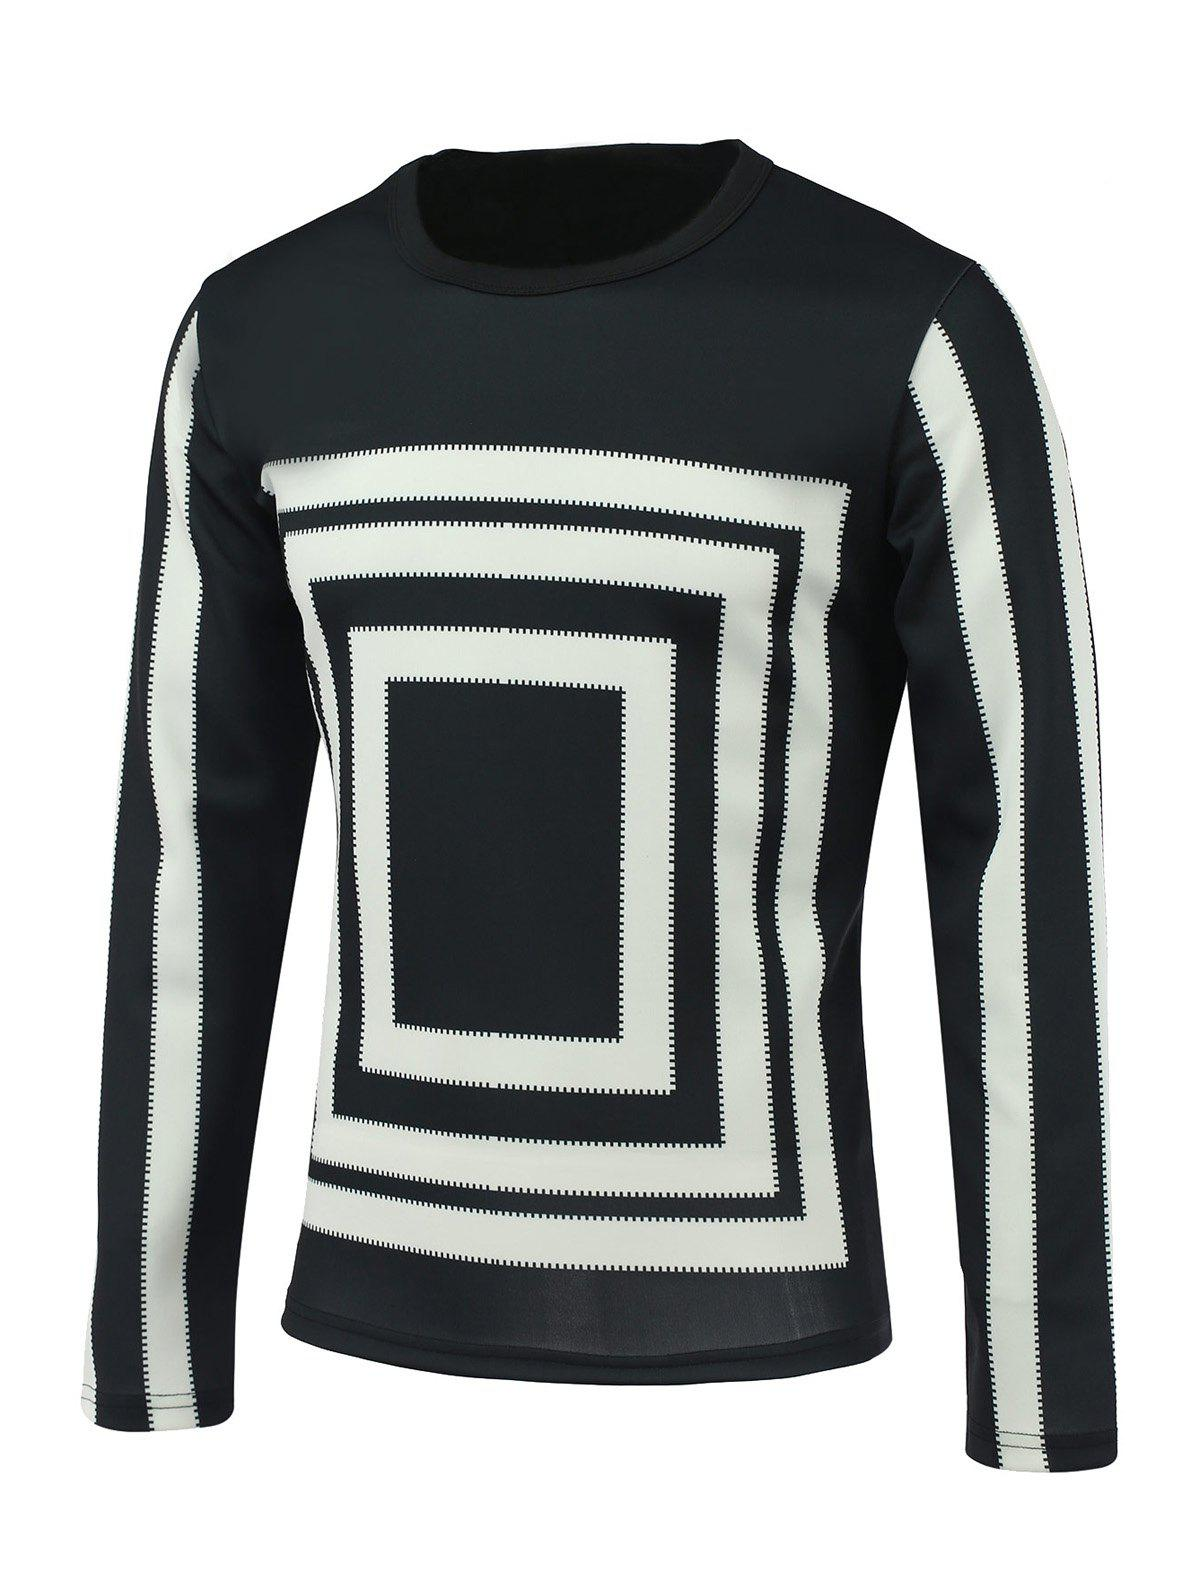 Round Neck Long Sleeve Box and Stripe Print Sweatshirt - BLACK 3XL